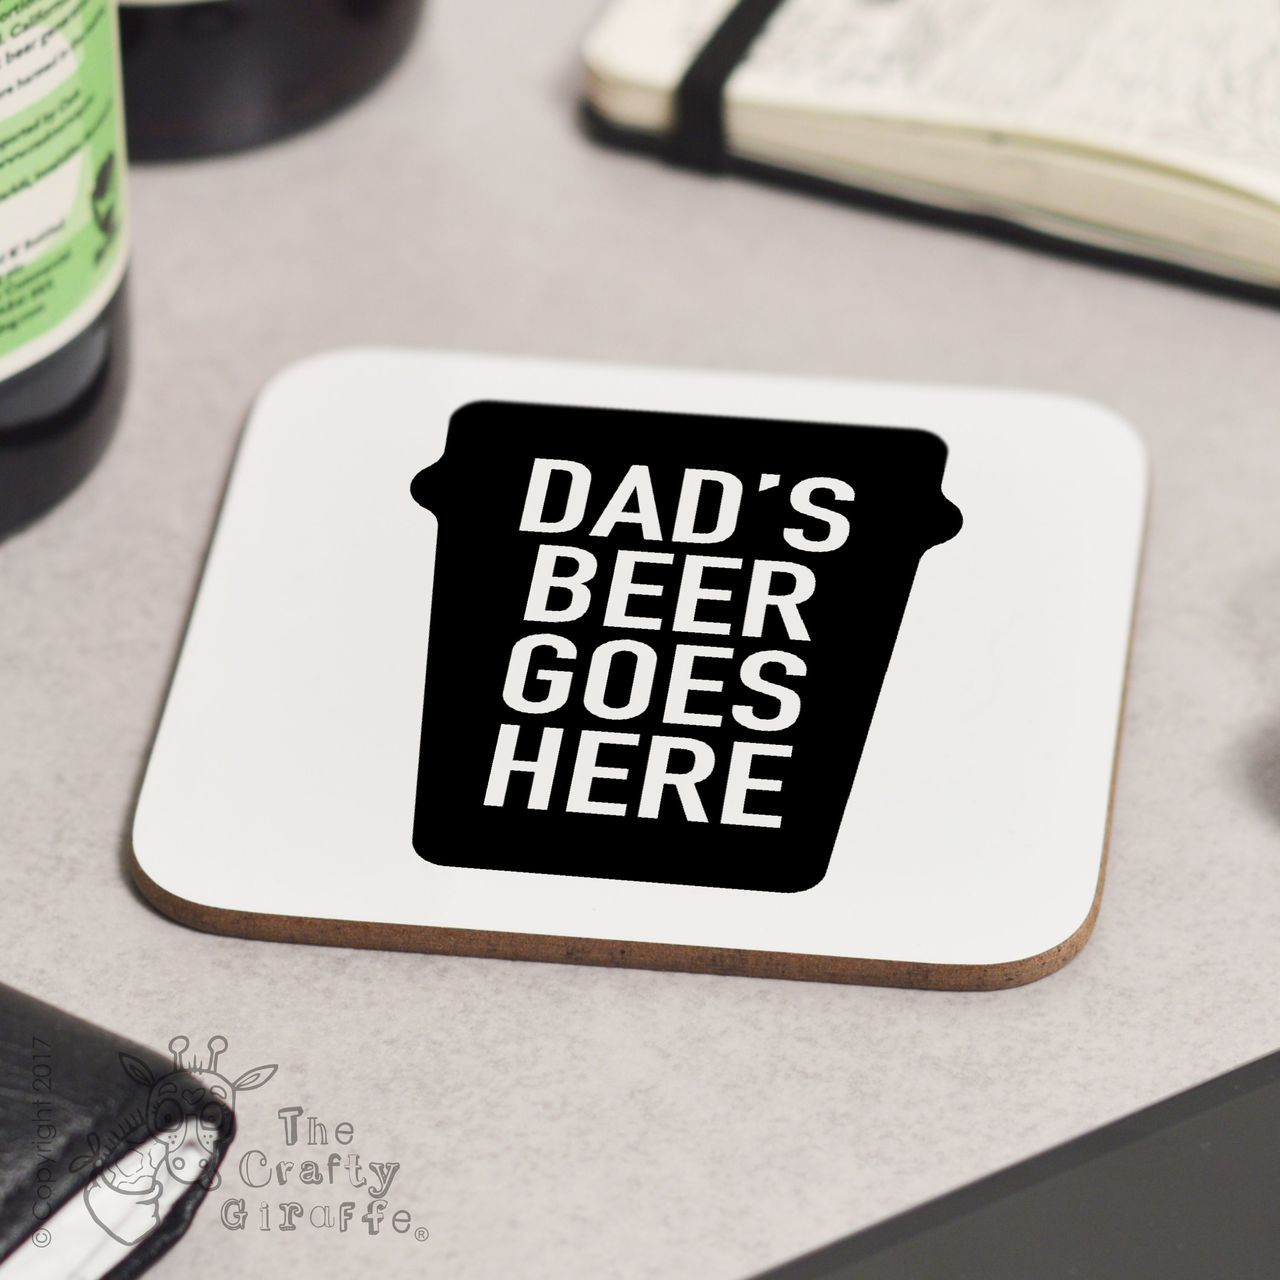 https://print.arcdesign.sk/images/products_gallery_images/coaster_-_dads_beer_goes_here_05438_1494592874.jpg